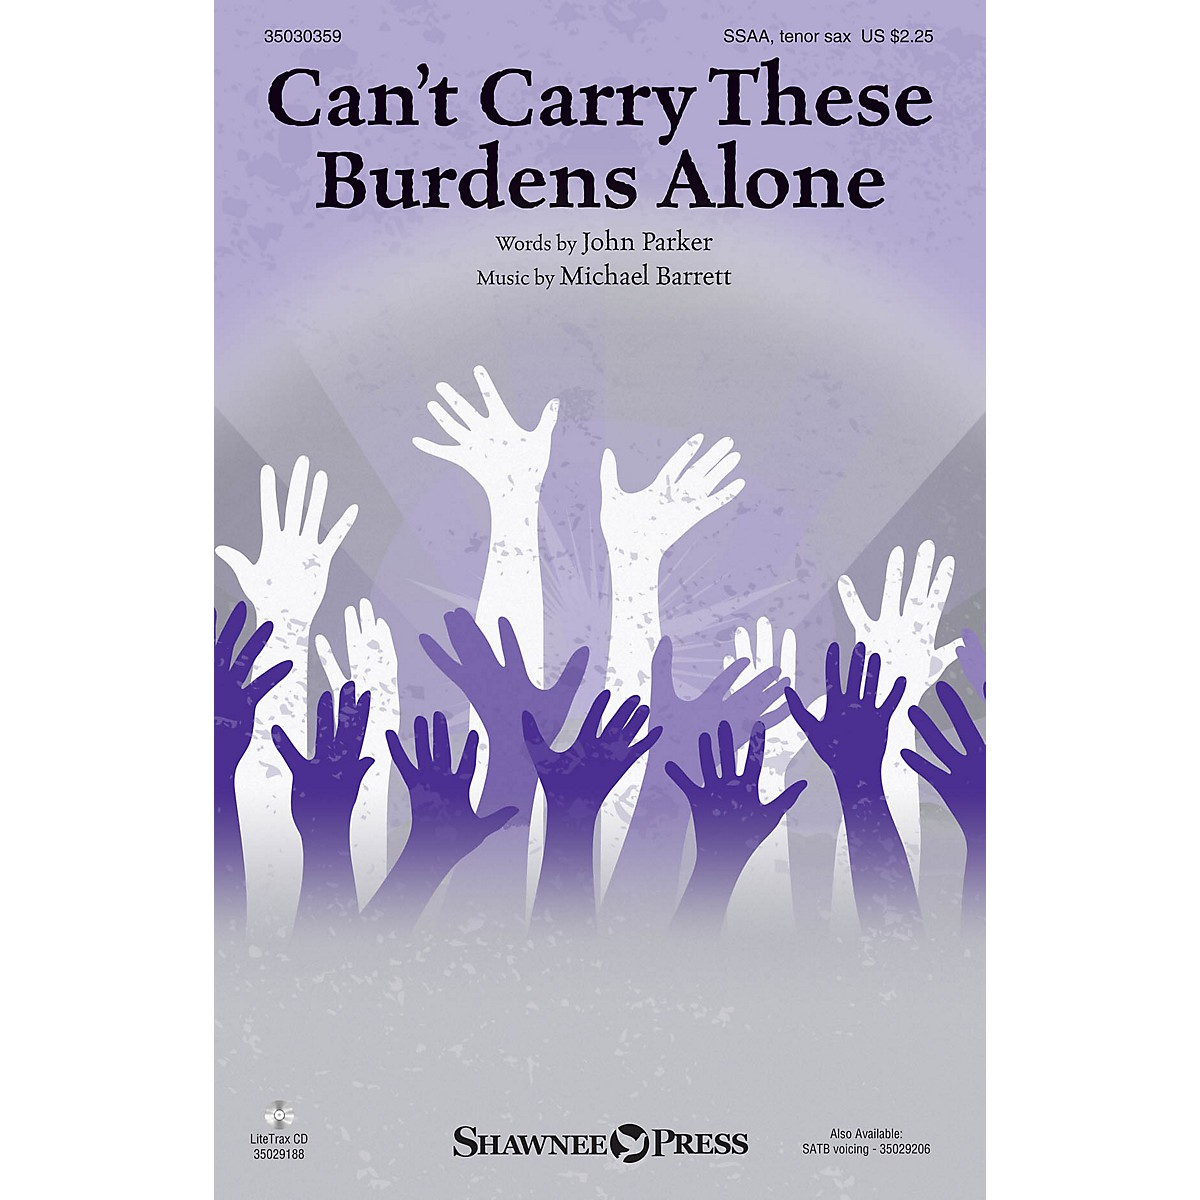 Shawnee Press Can't Carry These Burdens Alone SSAA, TENOR SAX composed by Michael Barrett